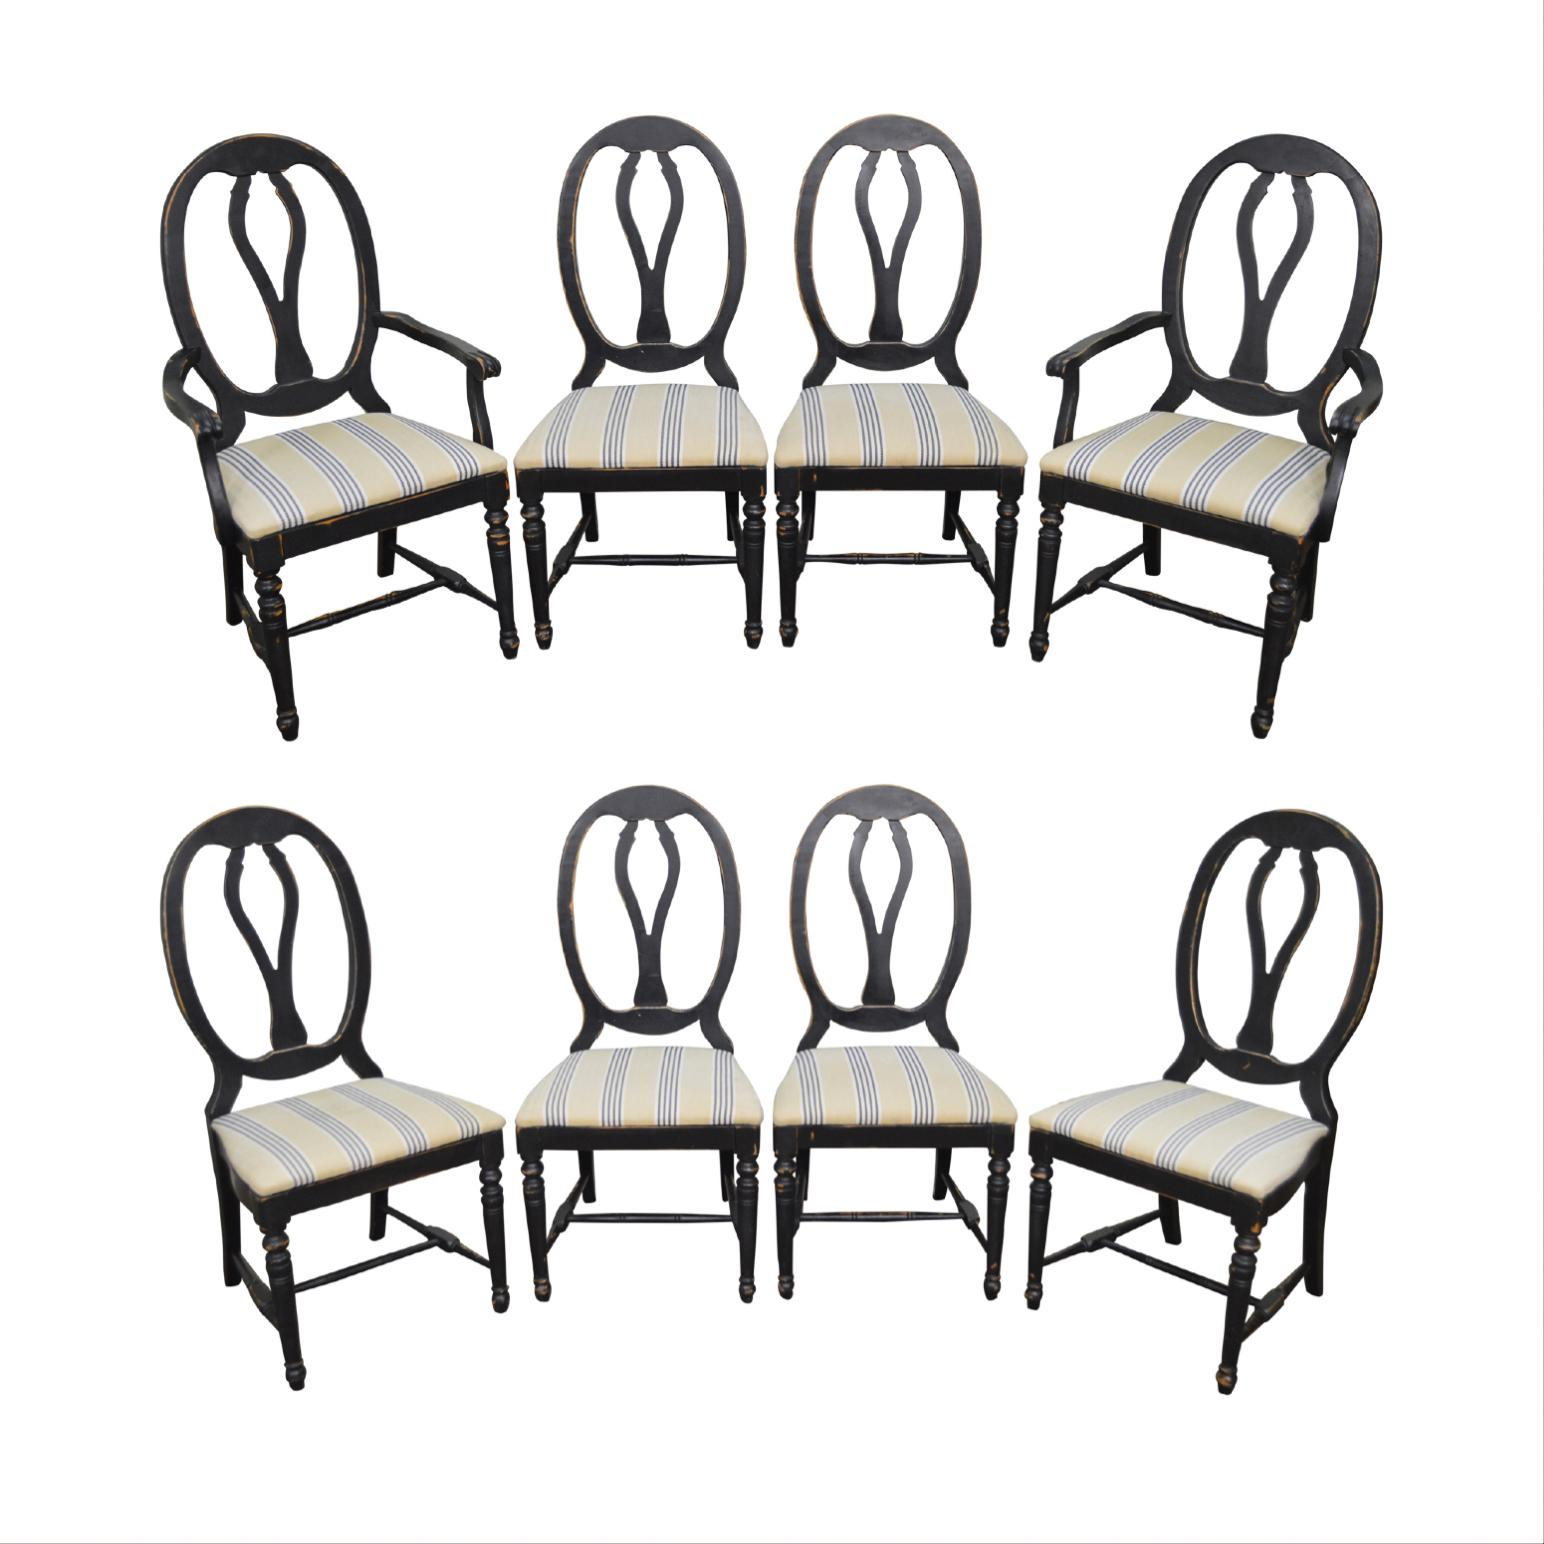 distressed black dining chairs wedding chair cover hire harrogate french country style set of 8 painted for sale image 11